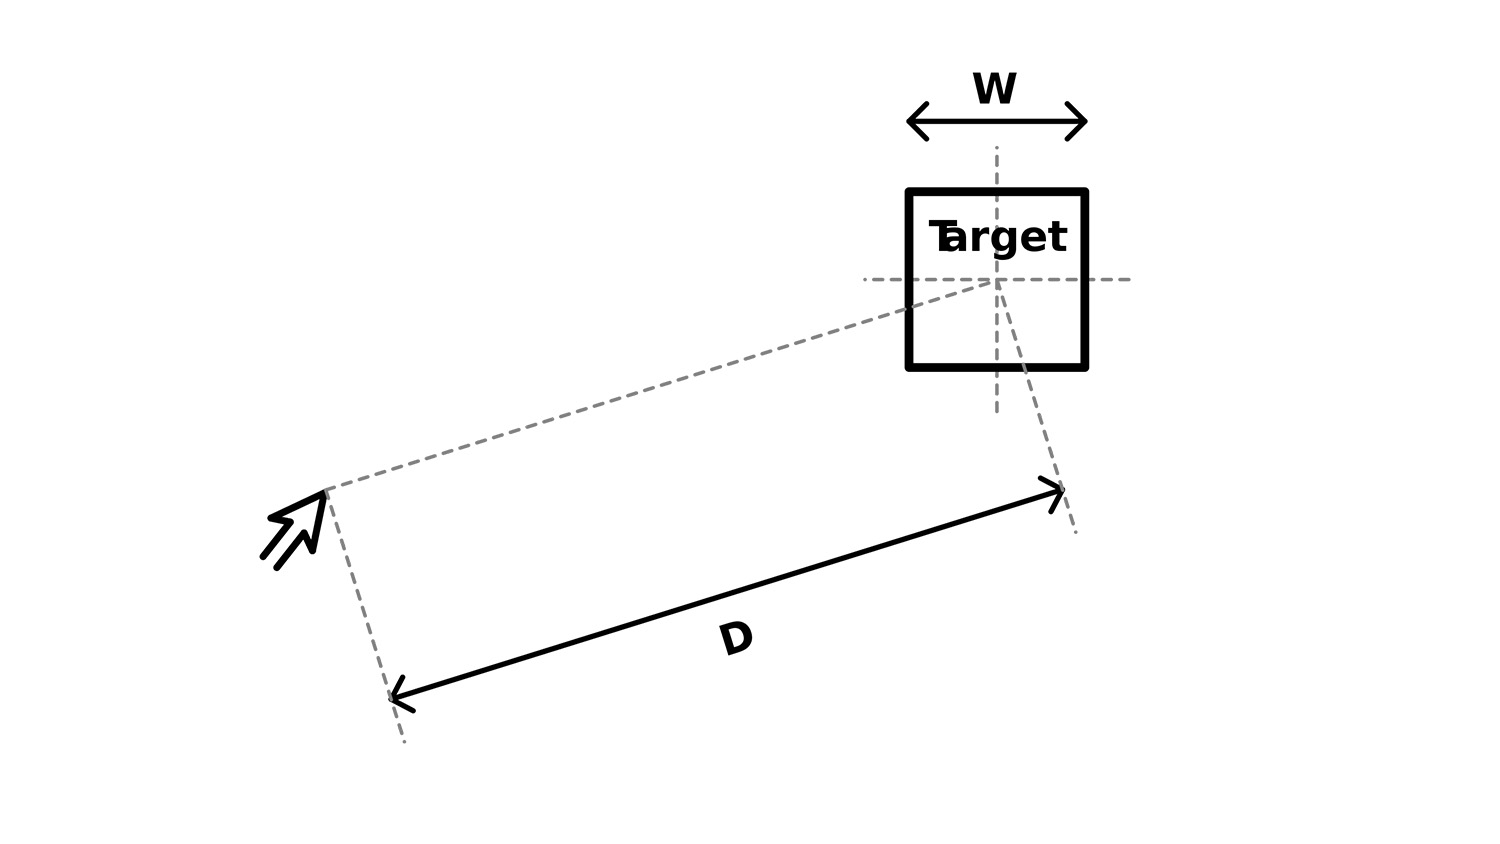 diagram of fitts's law